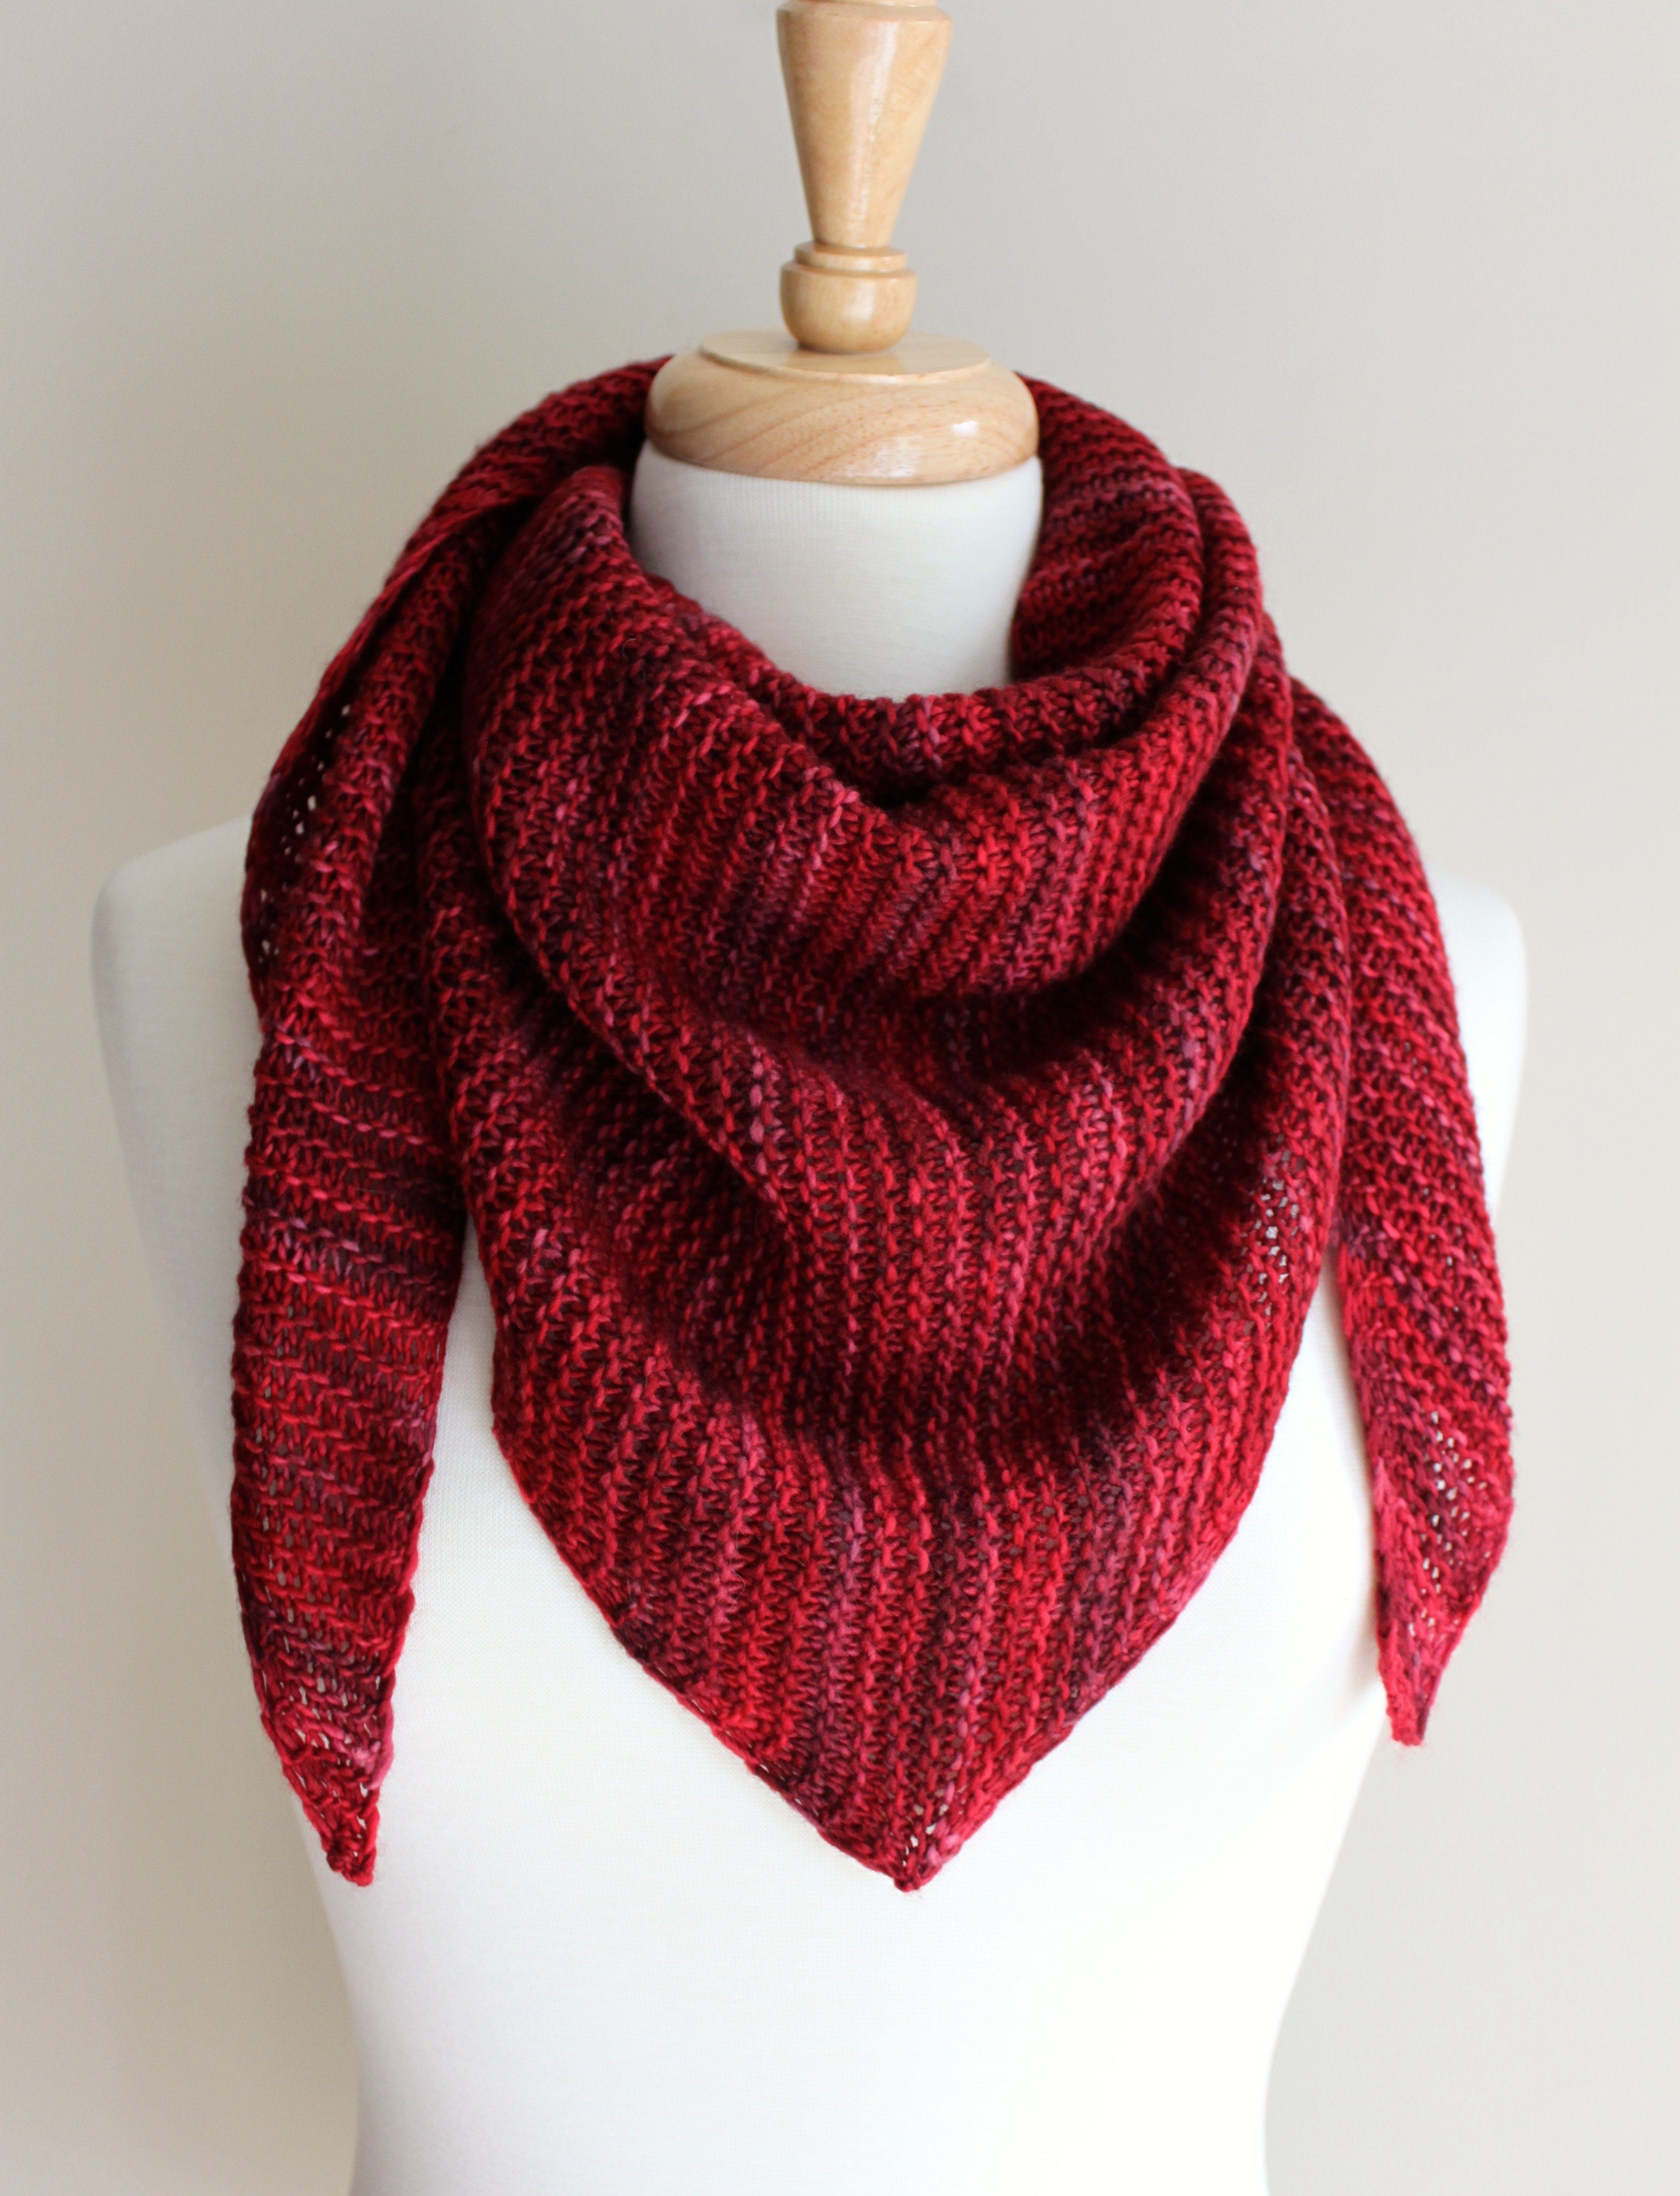 Elegant Free Knitting Patterns Truly Triangular Scarf Leah Free Easy Knitting Patterns Of Gorgeous 46 Models Free Easy Knitting Patterns